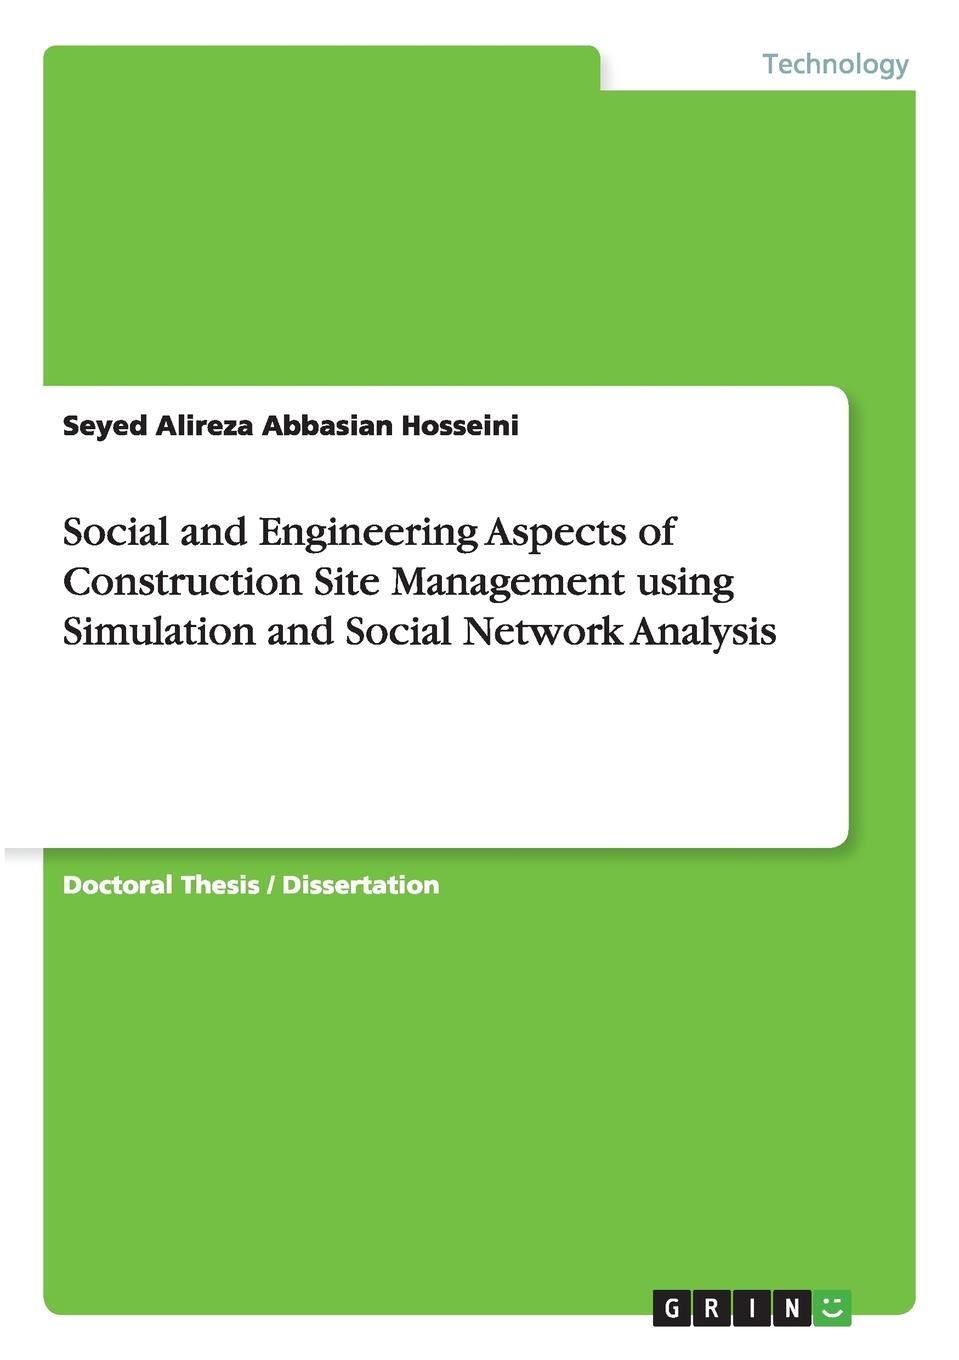 Seyed Alireza Abbasian Hosseini Social and Engineering Aspects of Construction Site Management using Simulation and Social Network Analysis